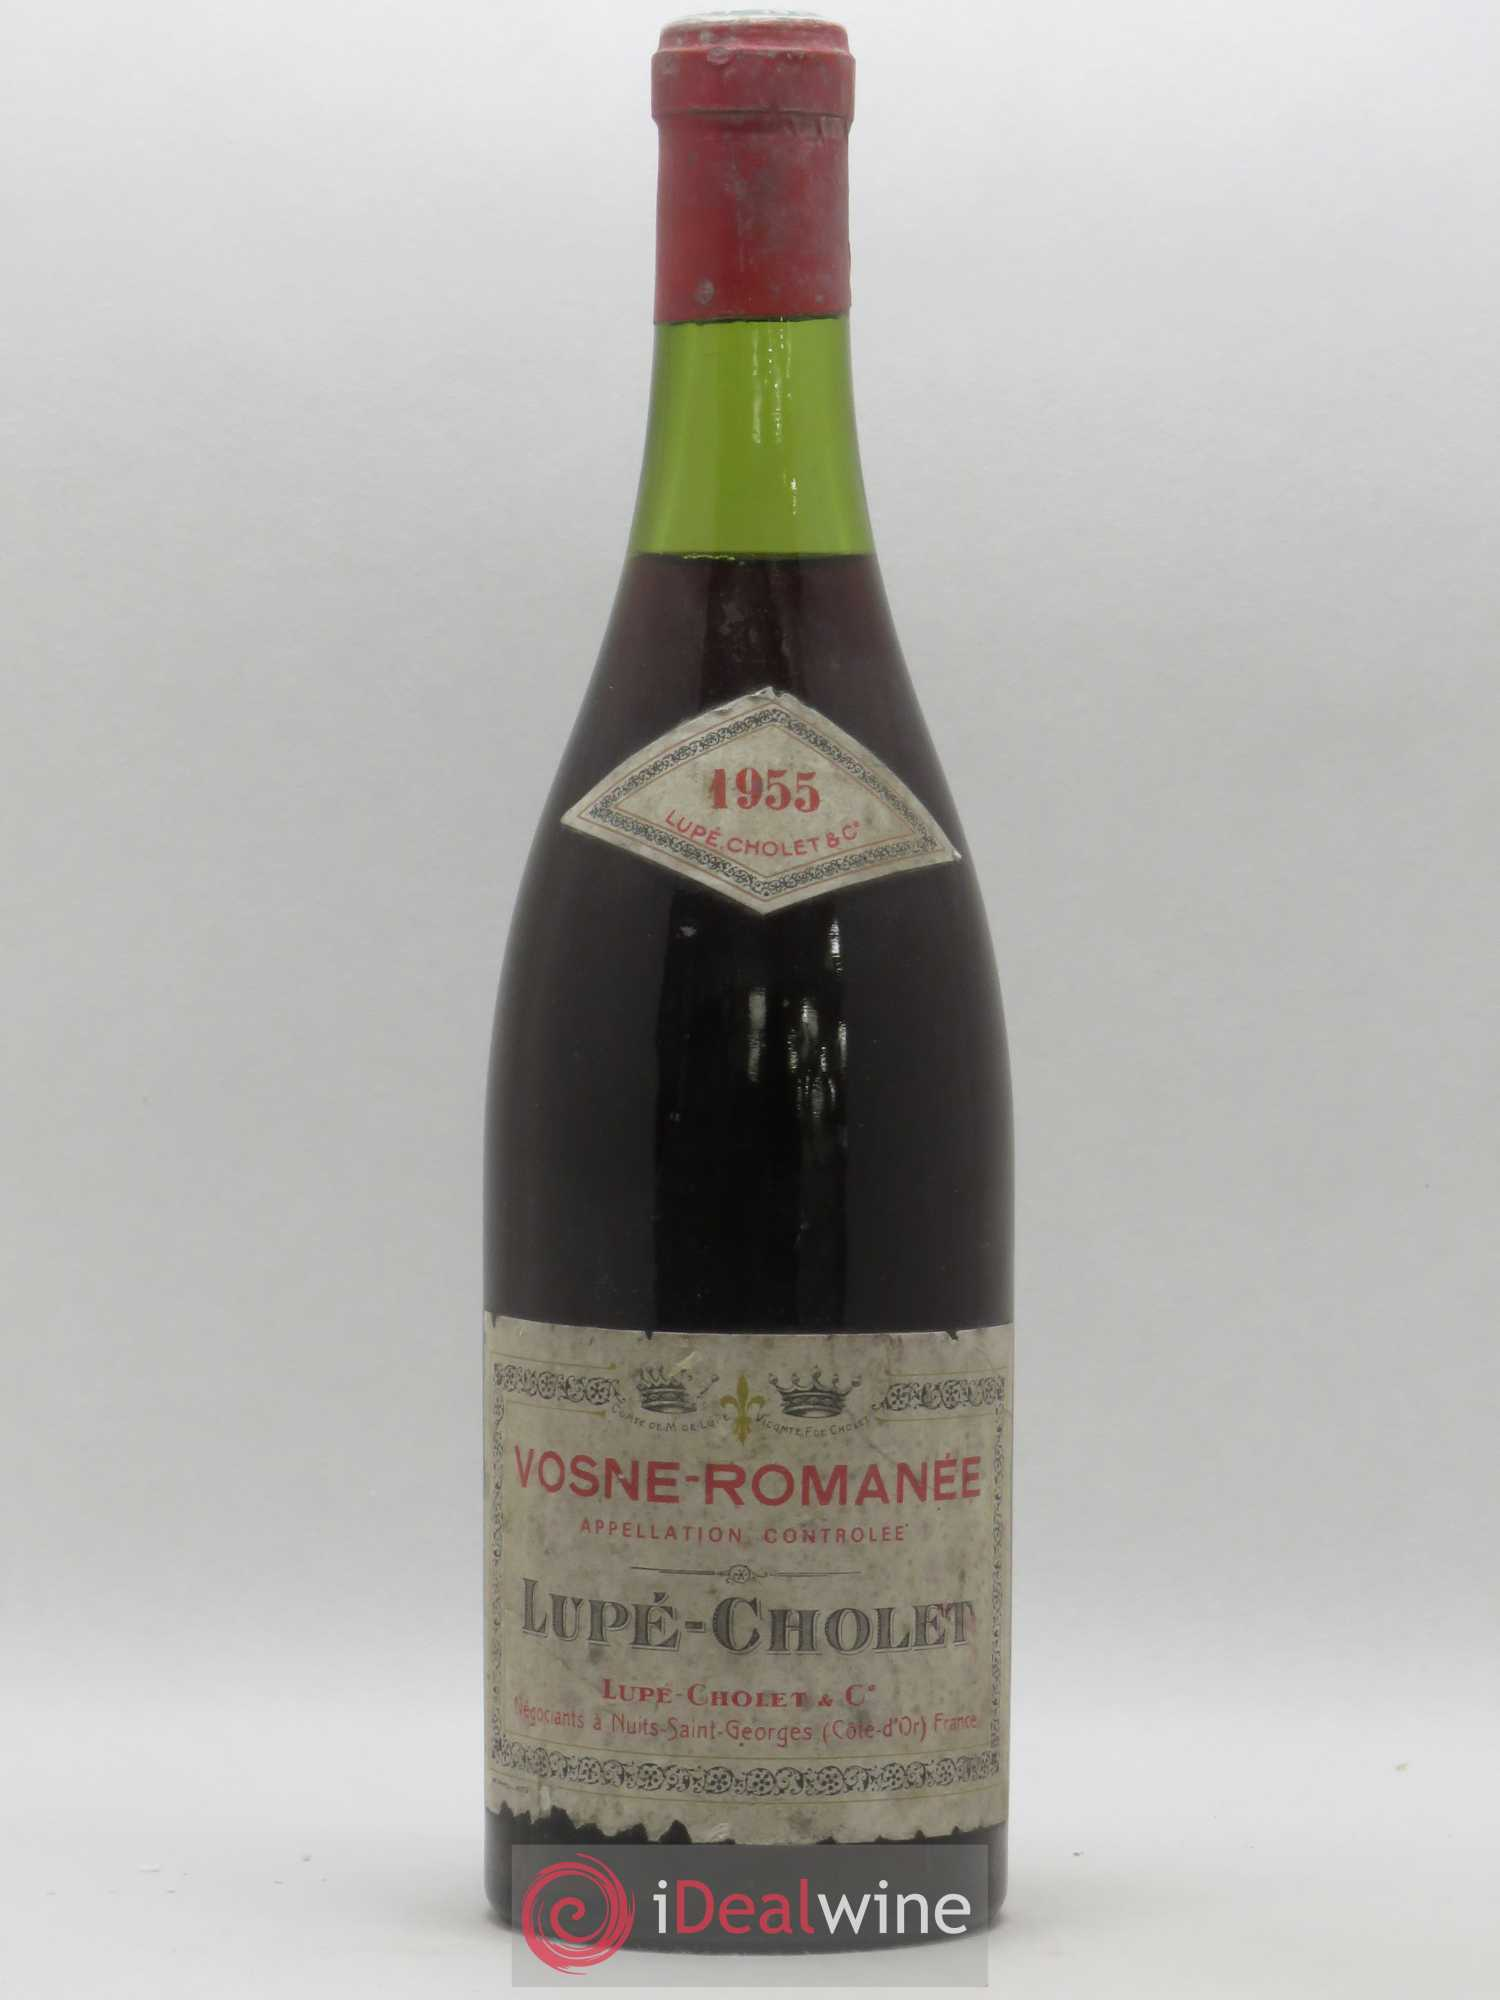 Vosne-Romanée Lupé Cholet 1955 - Lot of 1 Bottle